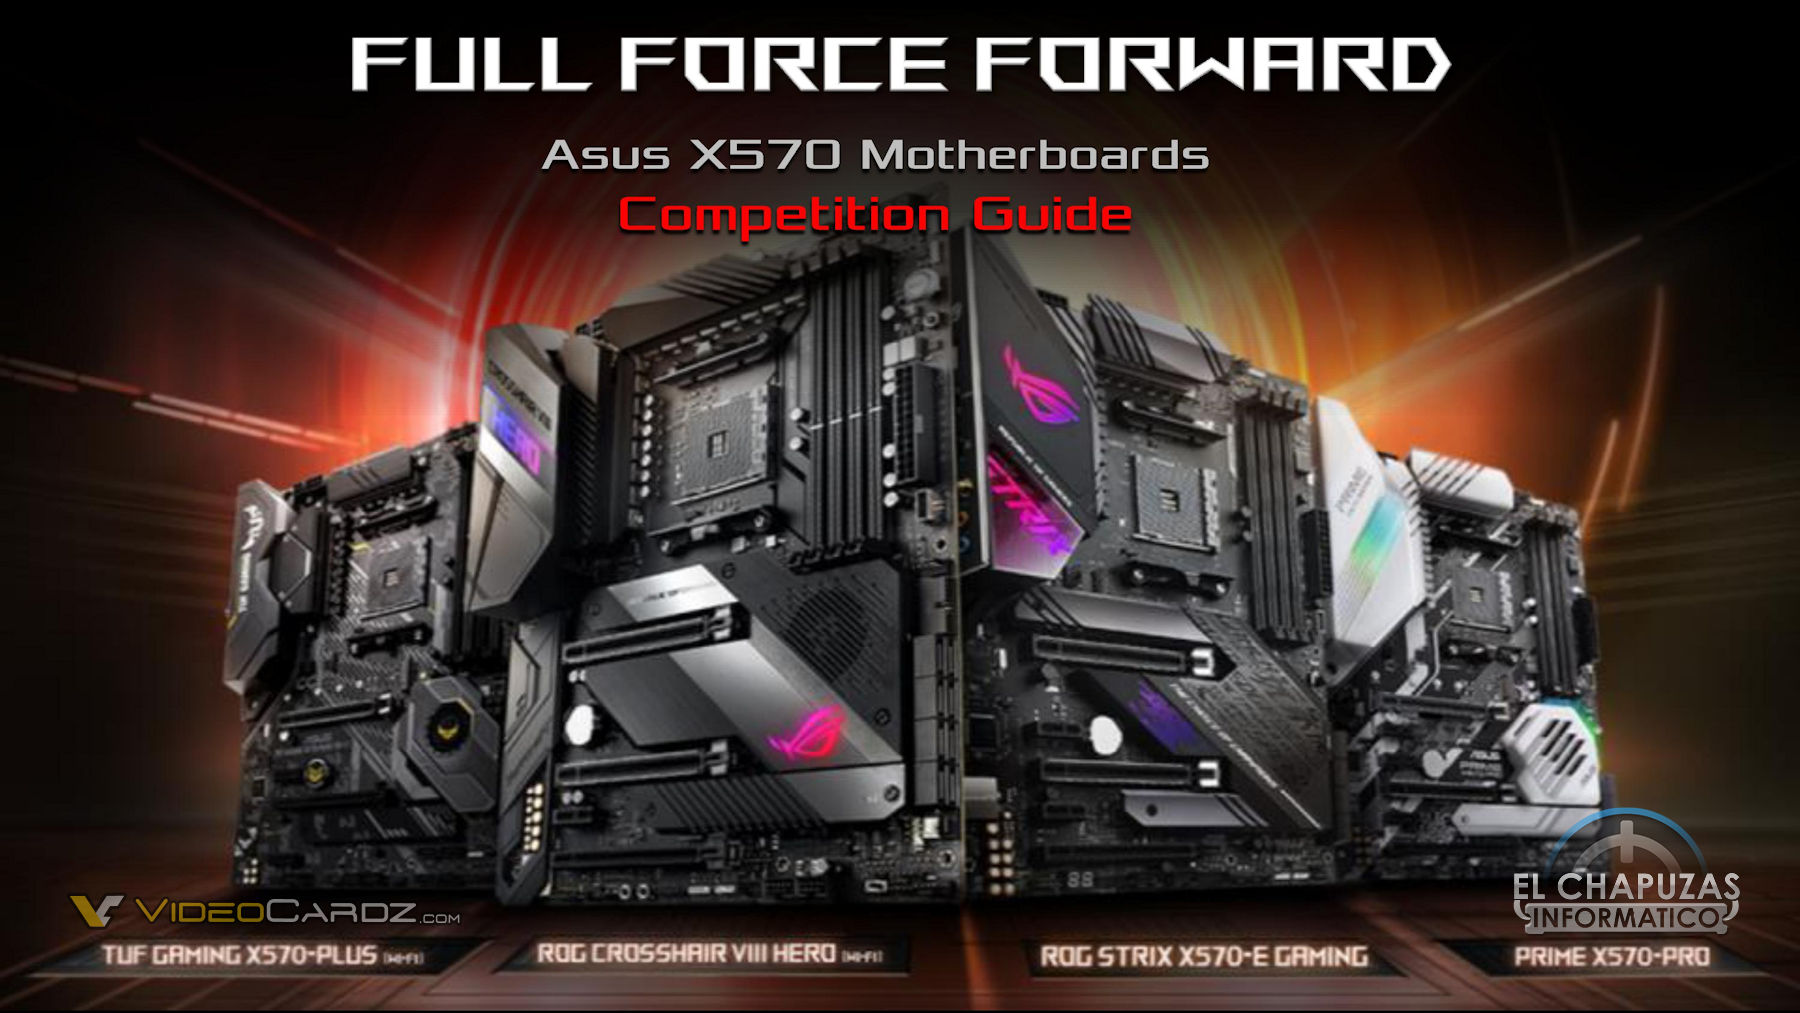 ASUS Thinks Their X570 Motherboards Are Better Than MSI